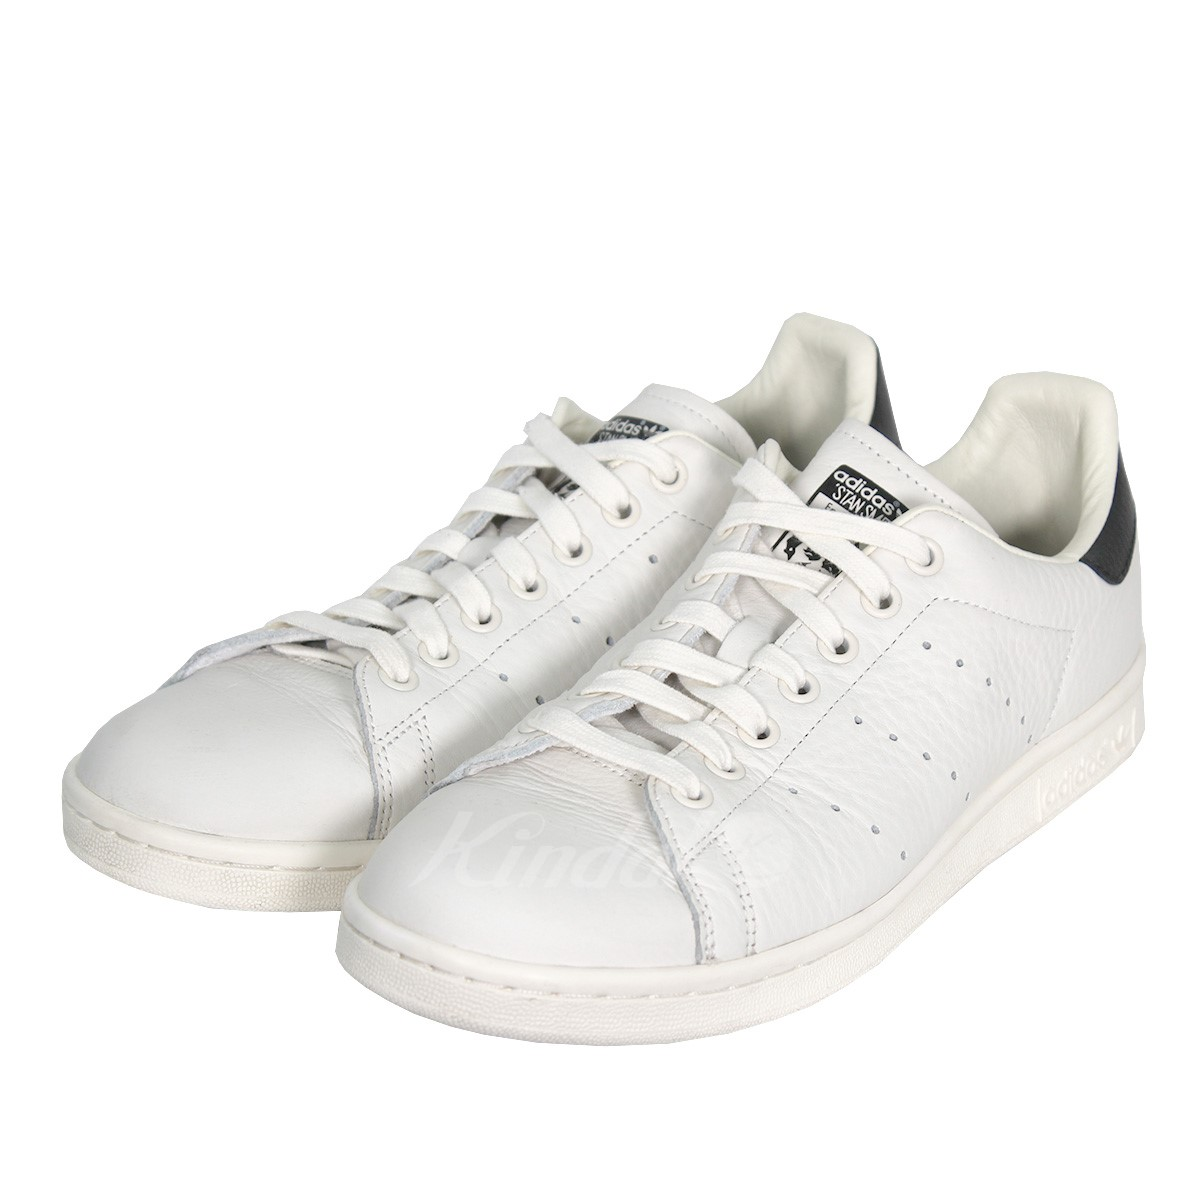 new lifestyle best price super specials adidas Originals STAN SMITH Stan Smith low-frequency cut sneakers white  size: 26. 0cm (Adidas originals)